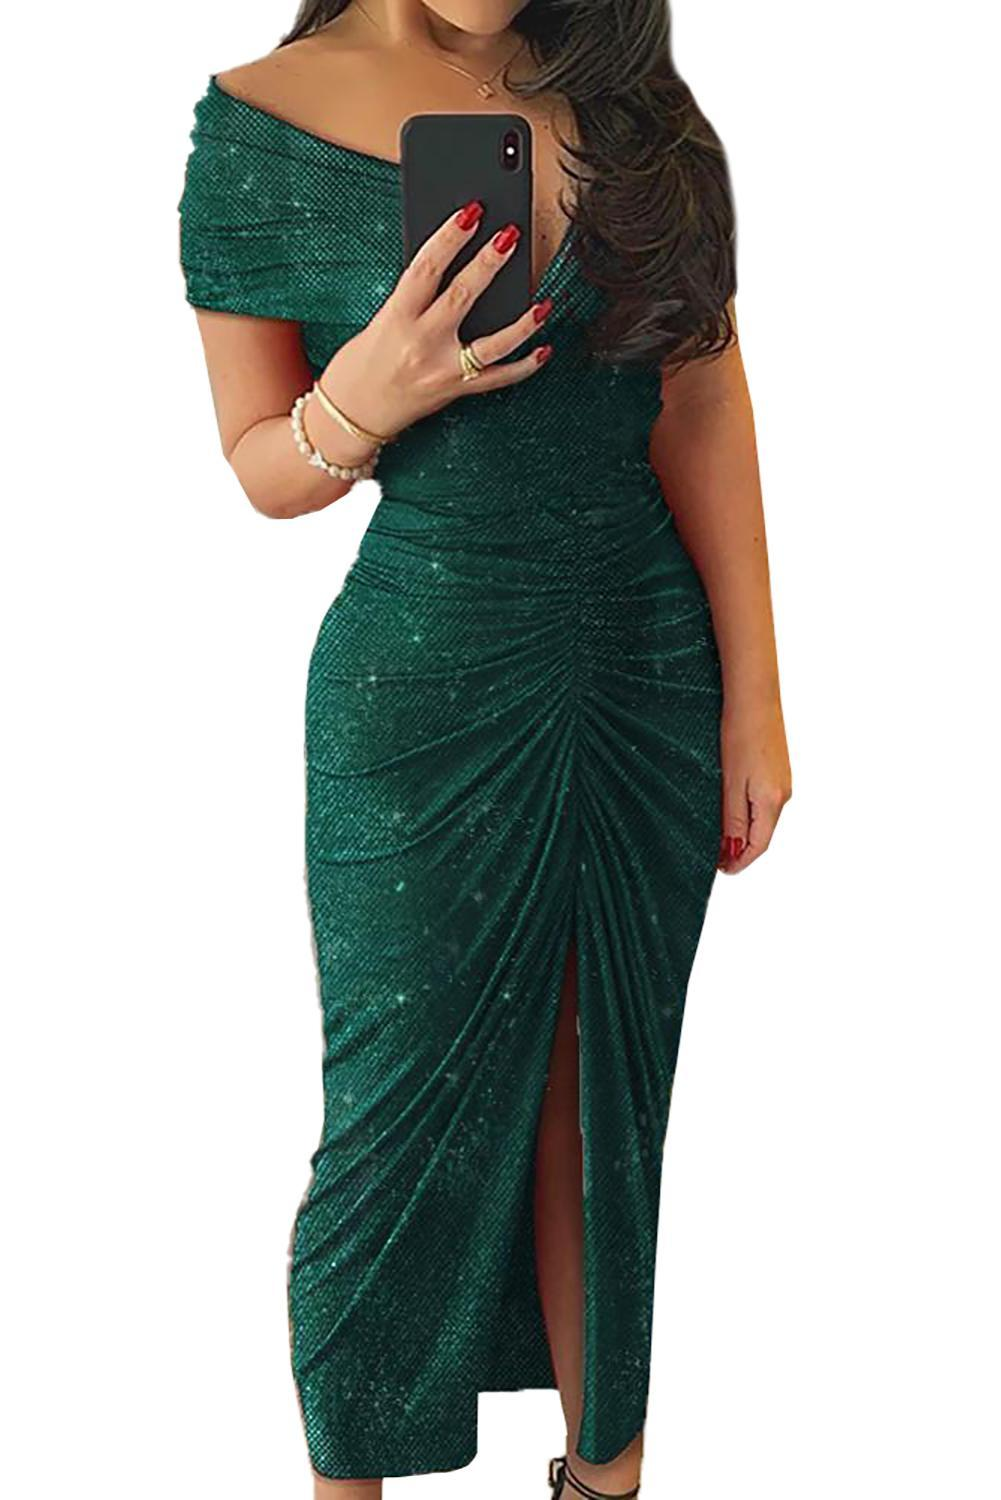 Green/Black Glitter V Neck Off Shoulder Ruched Slit Party Elegant Dress Women Short Sleeve High Quality Maxi Dresses Plus Size